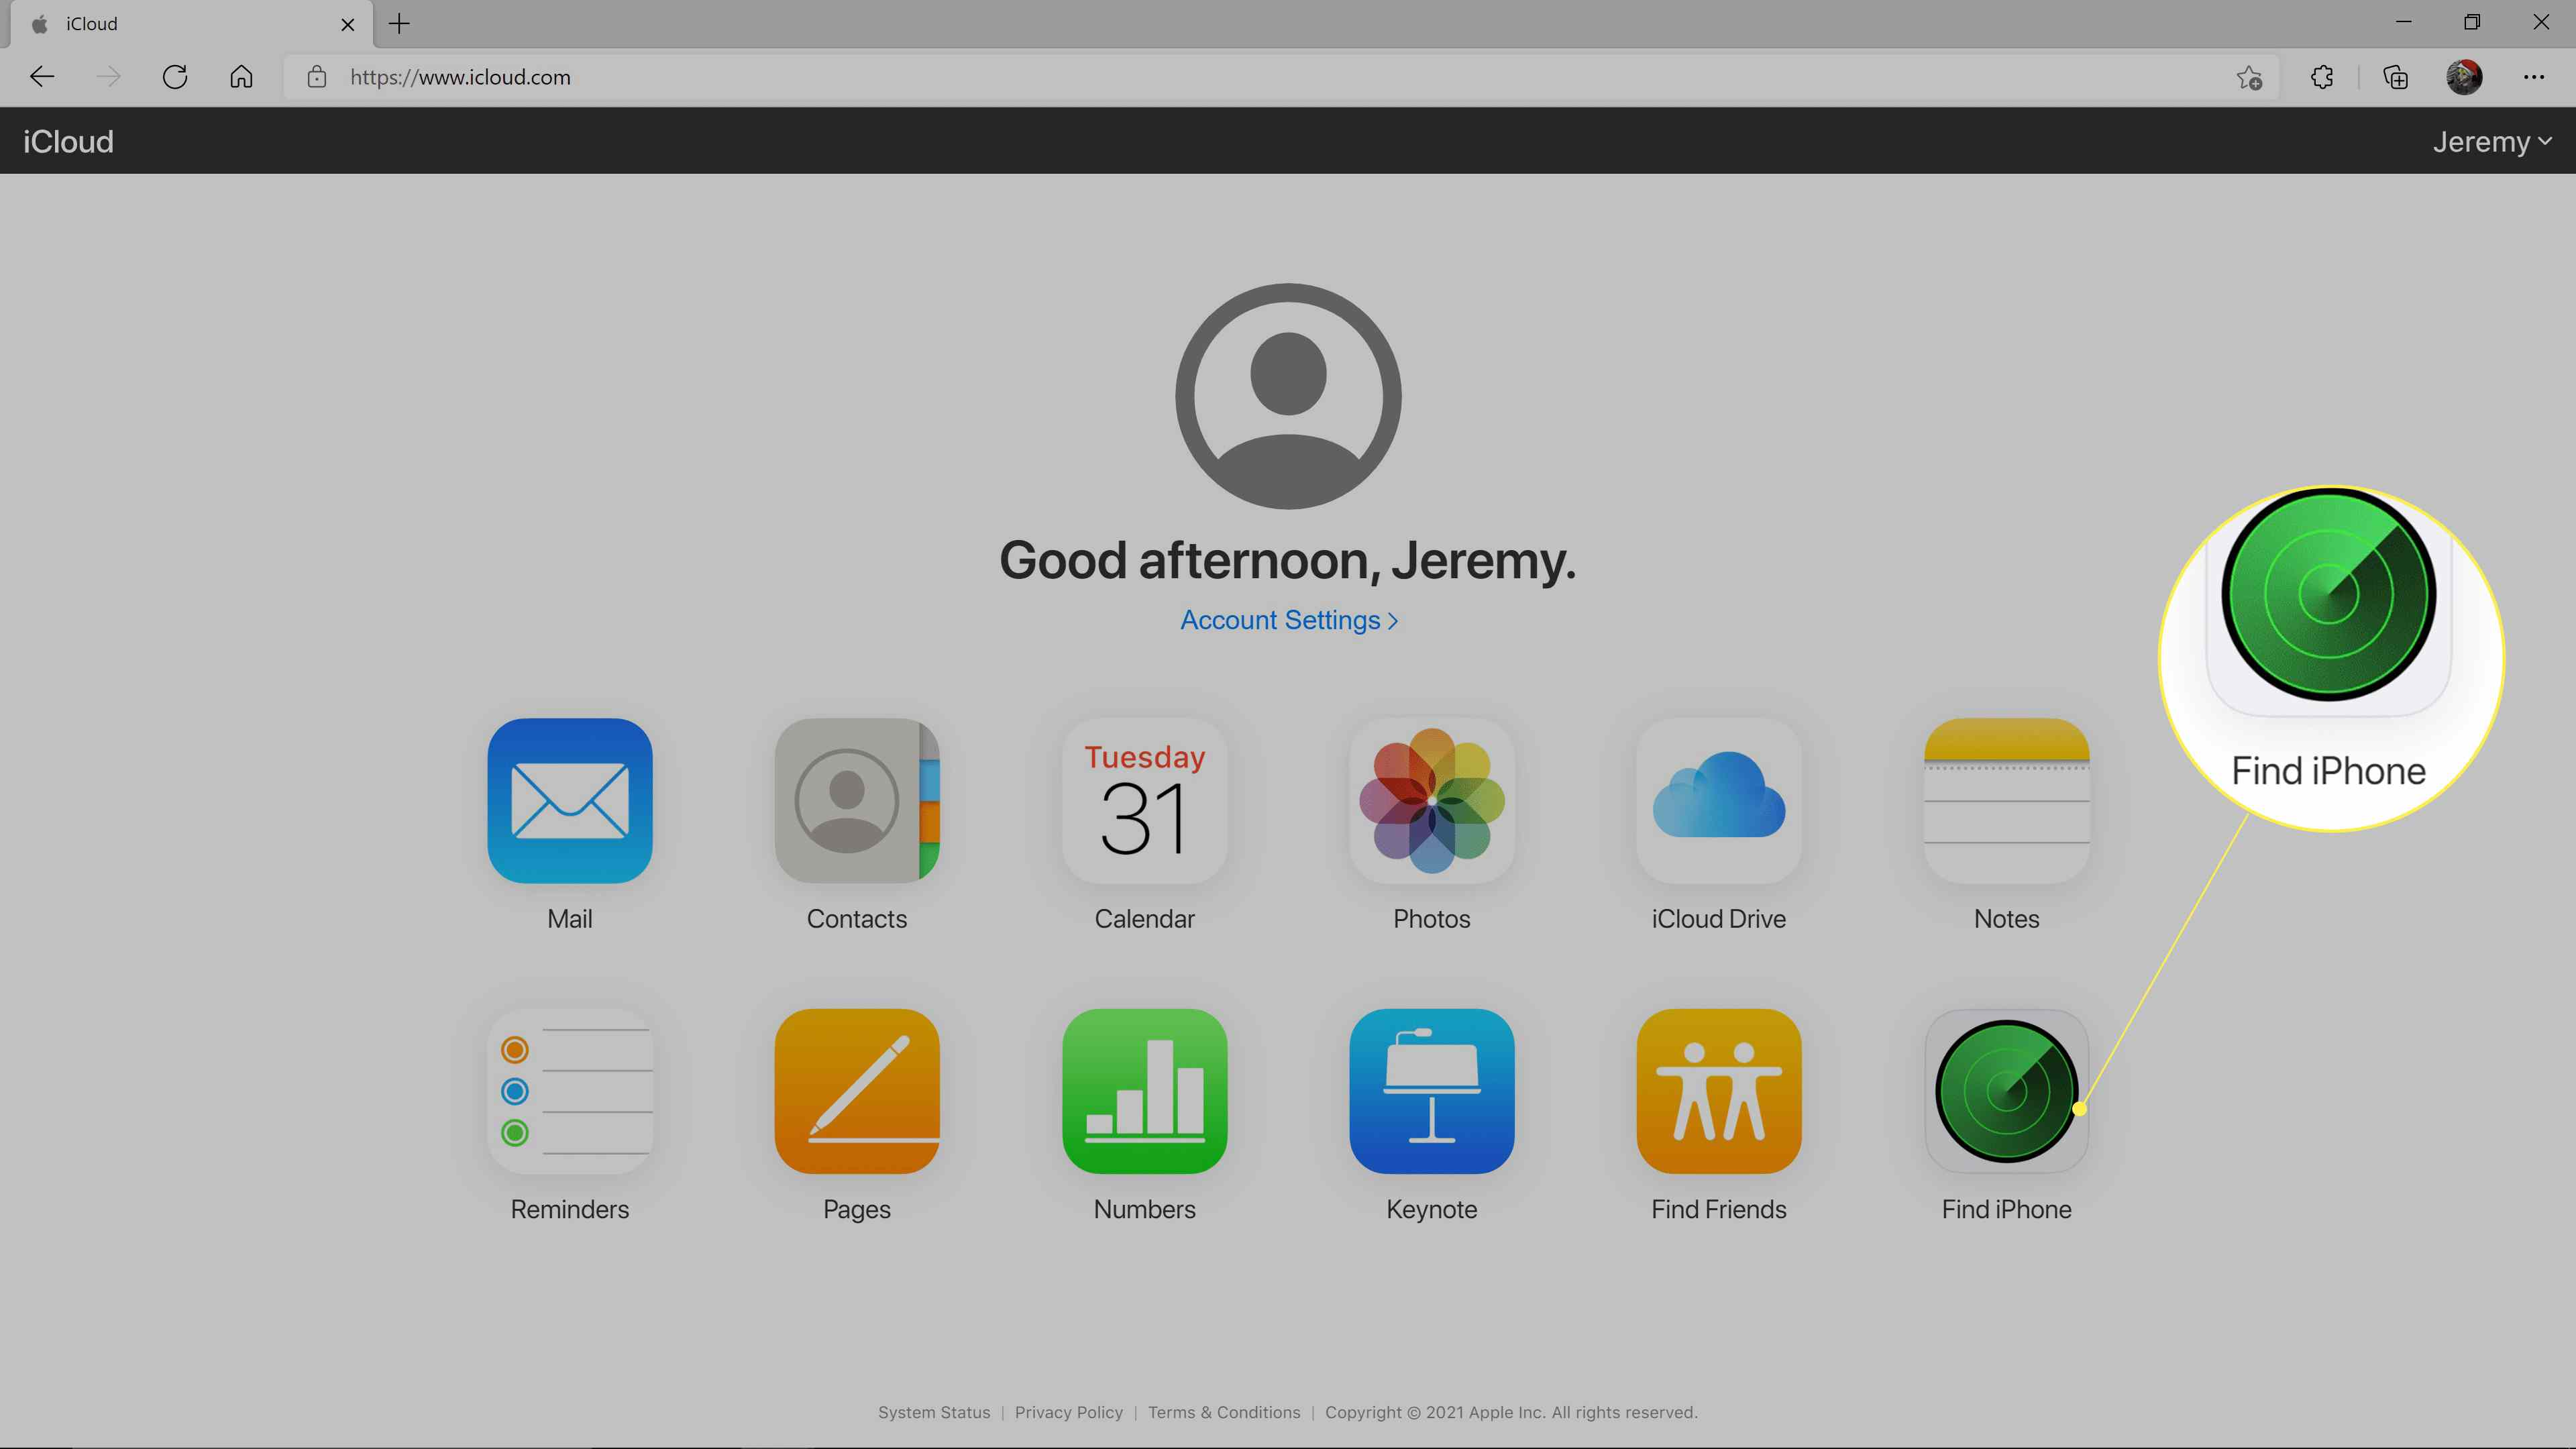 Find iPhone highlighted on the iCloud website.